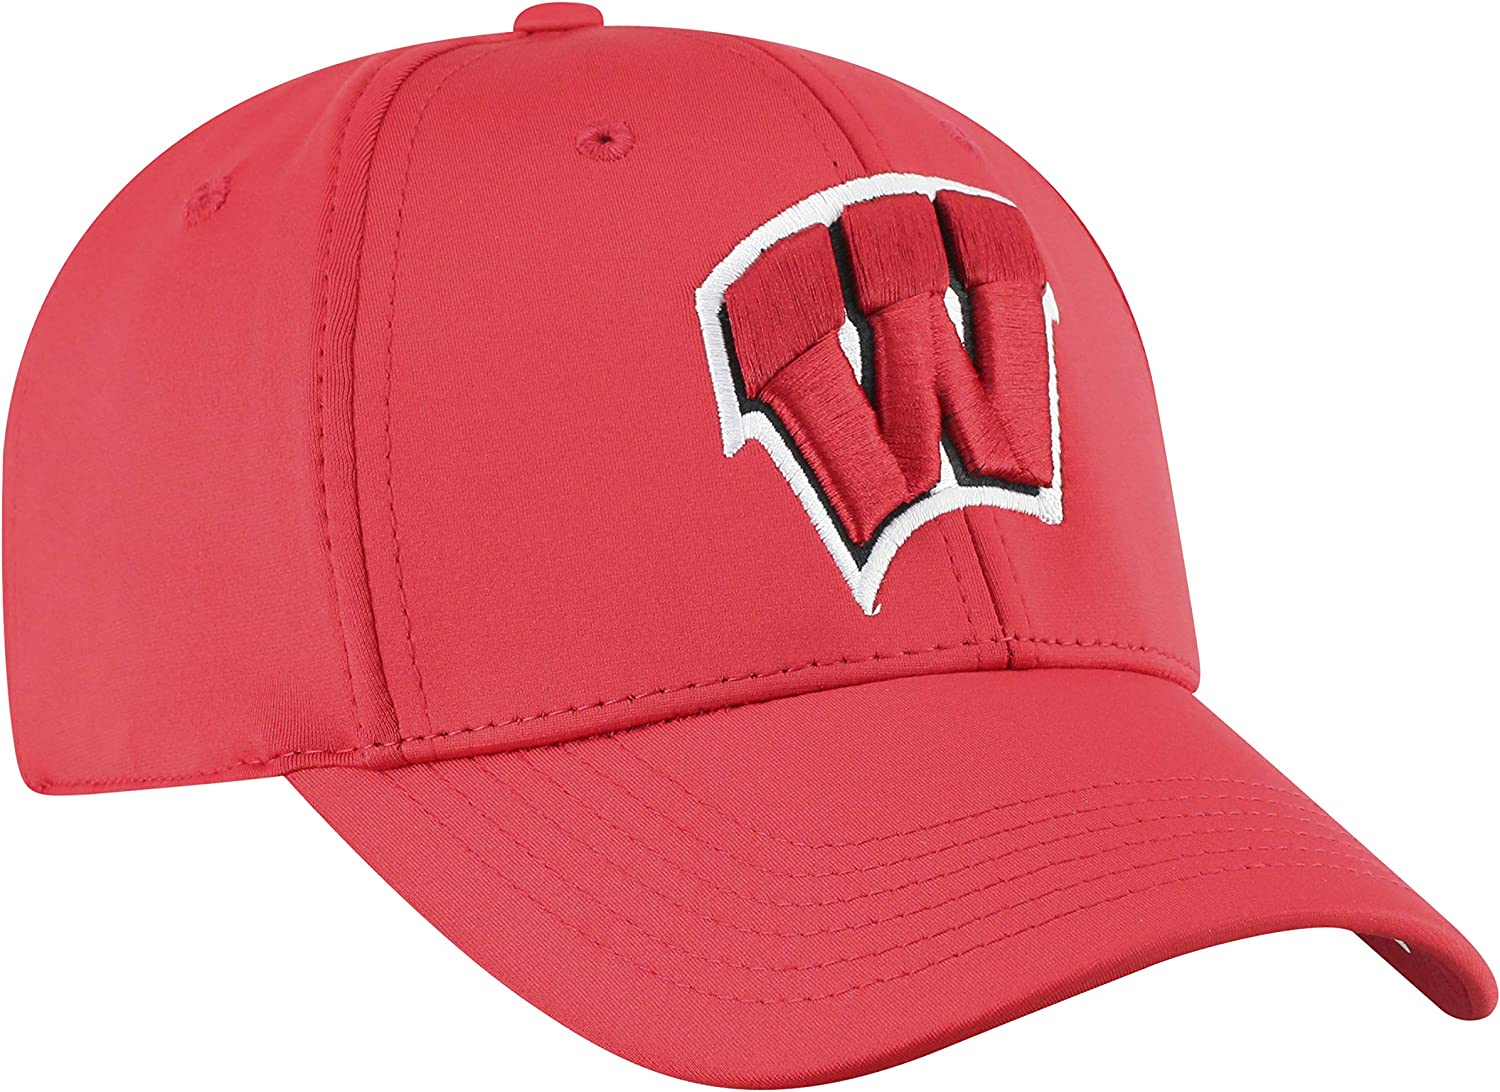 Top of the World NCAA Mens Hat One Fit Phenom Team Icon